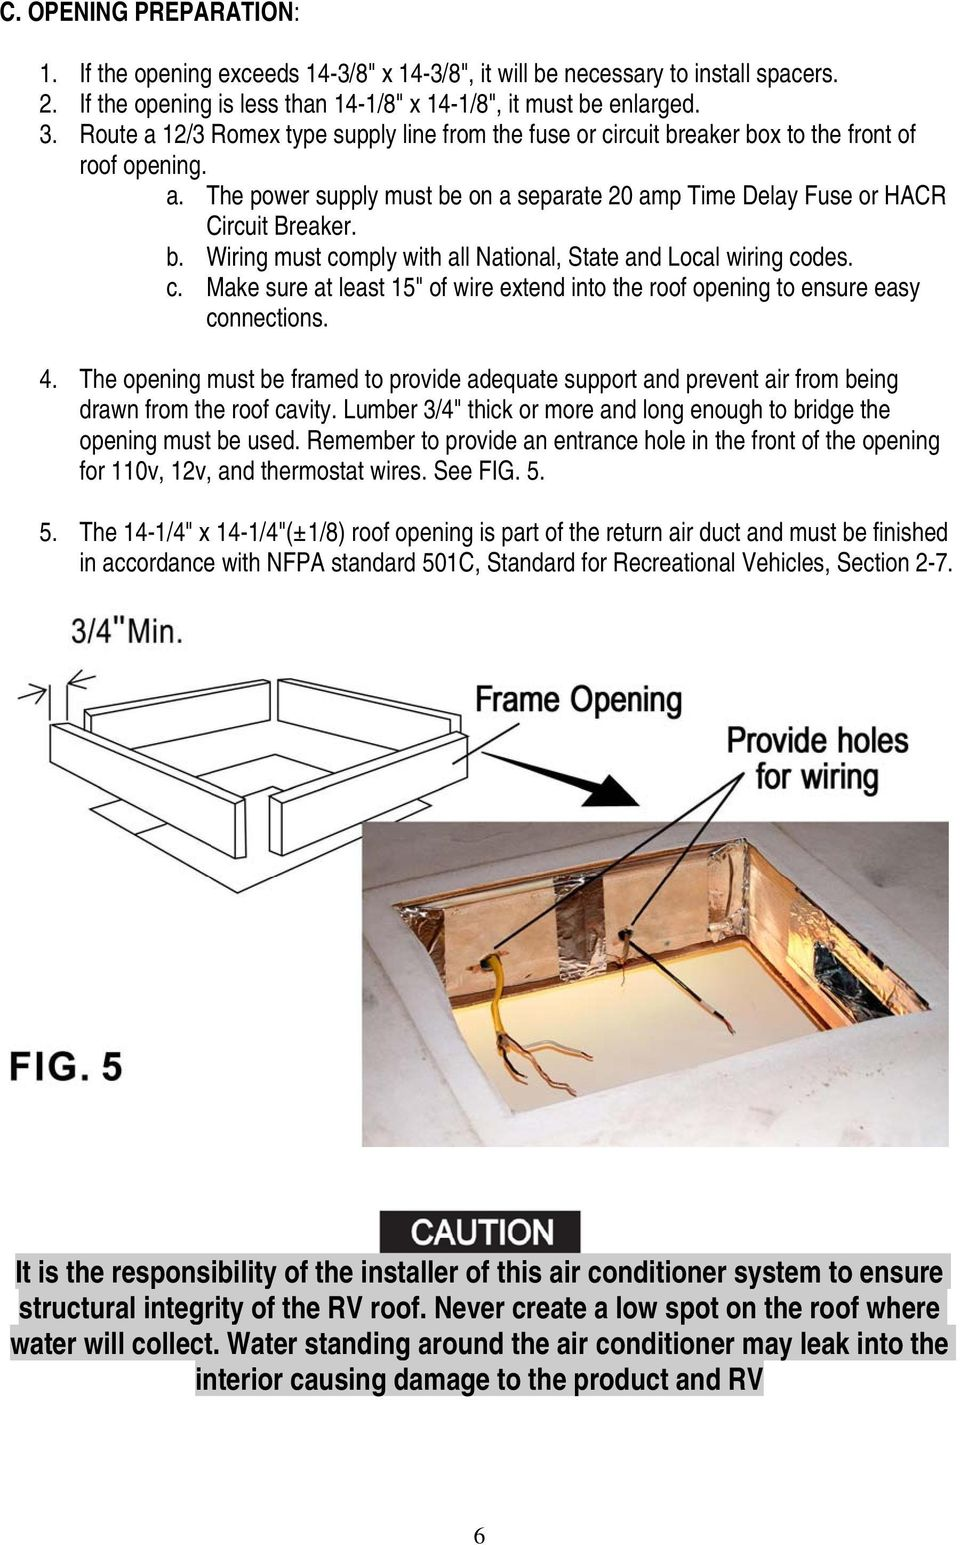 Roof Top Air Conditioner Installation And Operating Instructions Pdf Wiring Diagram For Recreational Vehicles Make Sure At Least 15 Of Wire Extend Into The Opening To